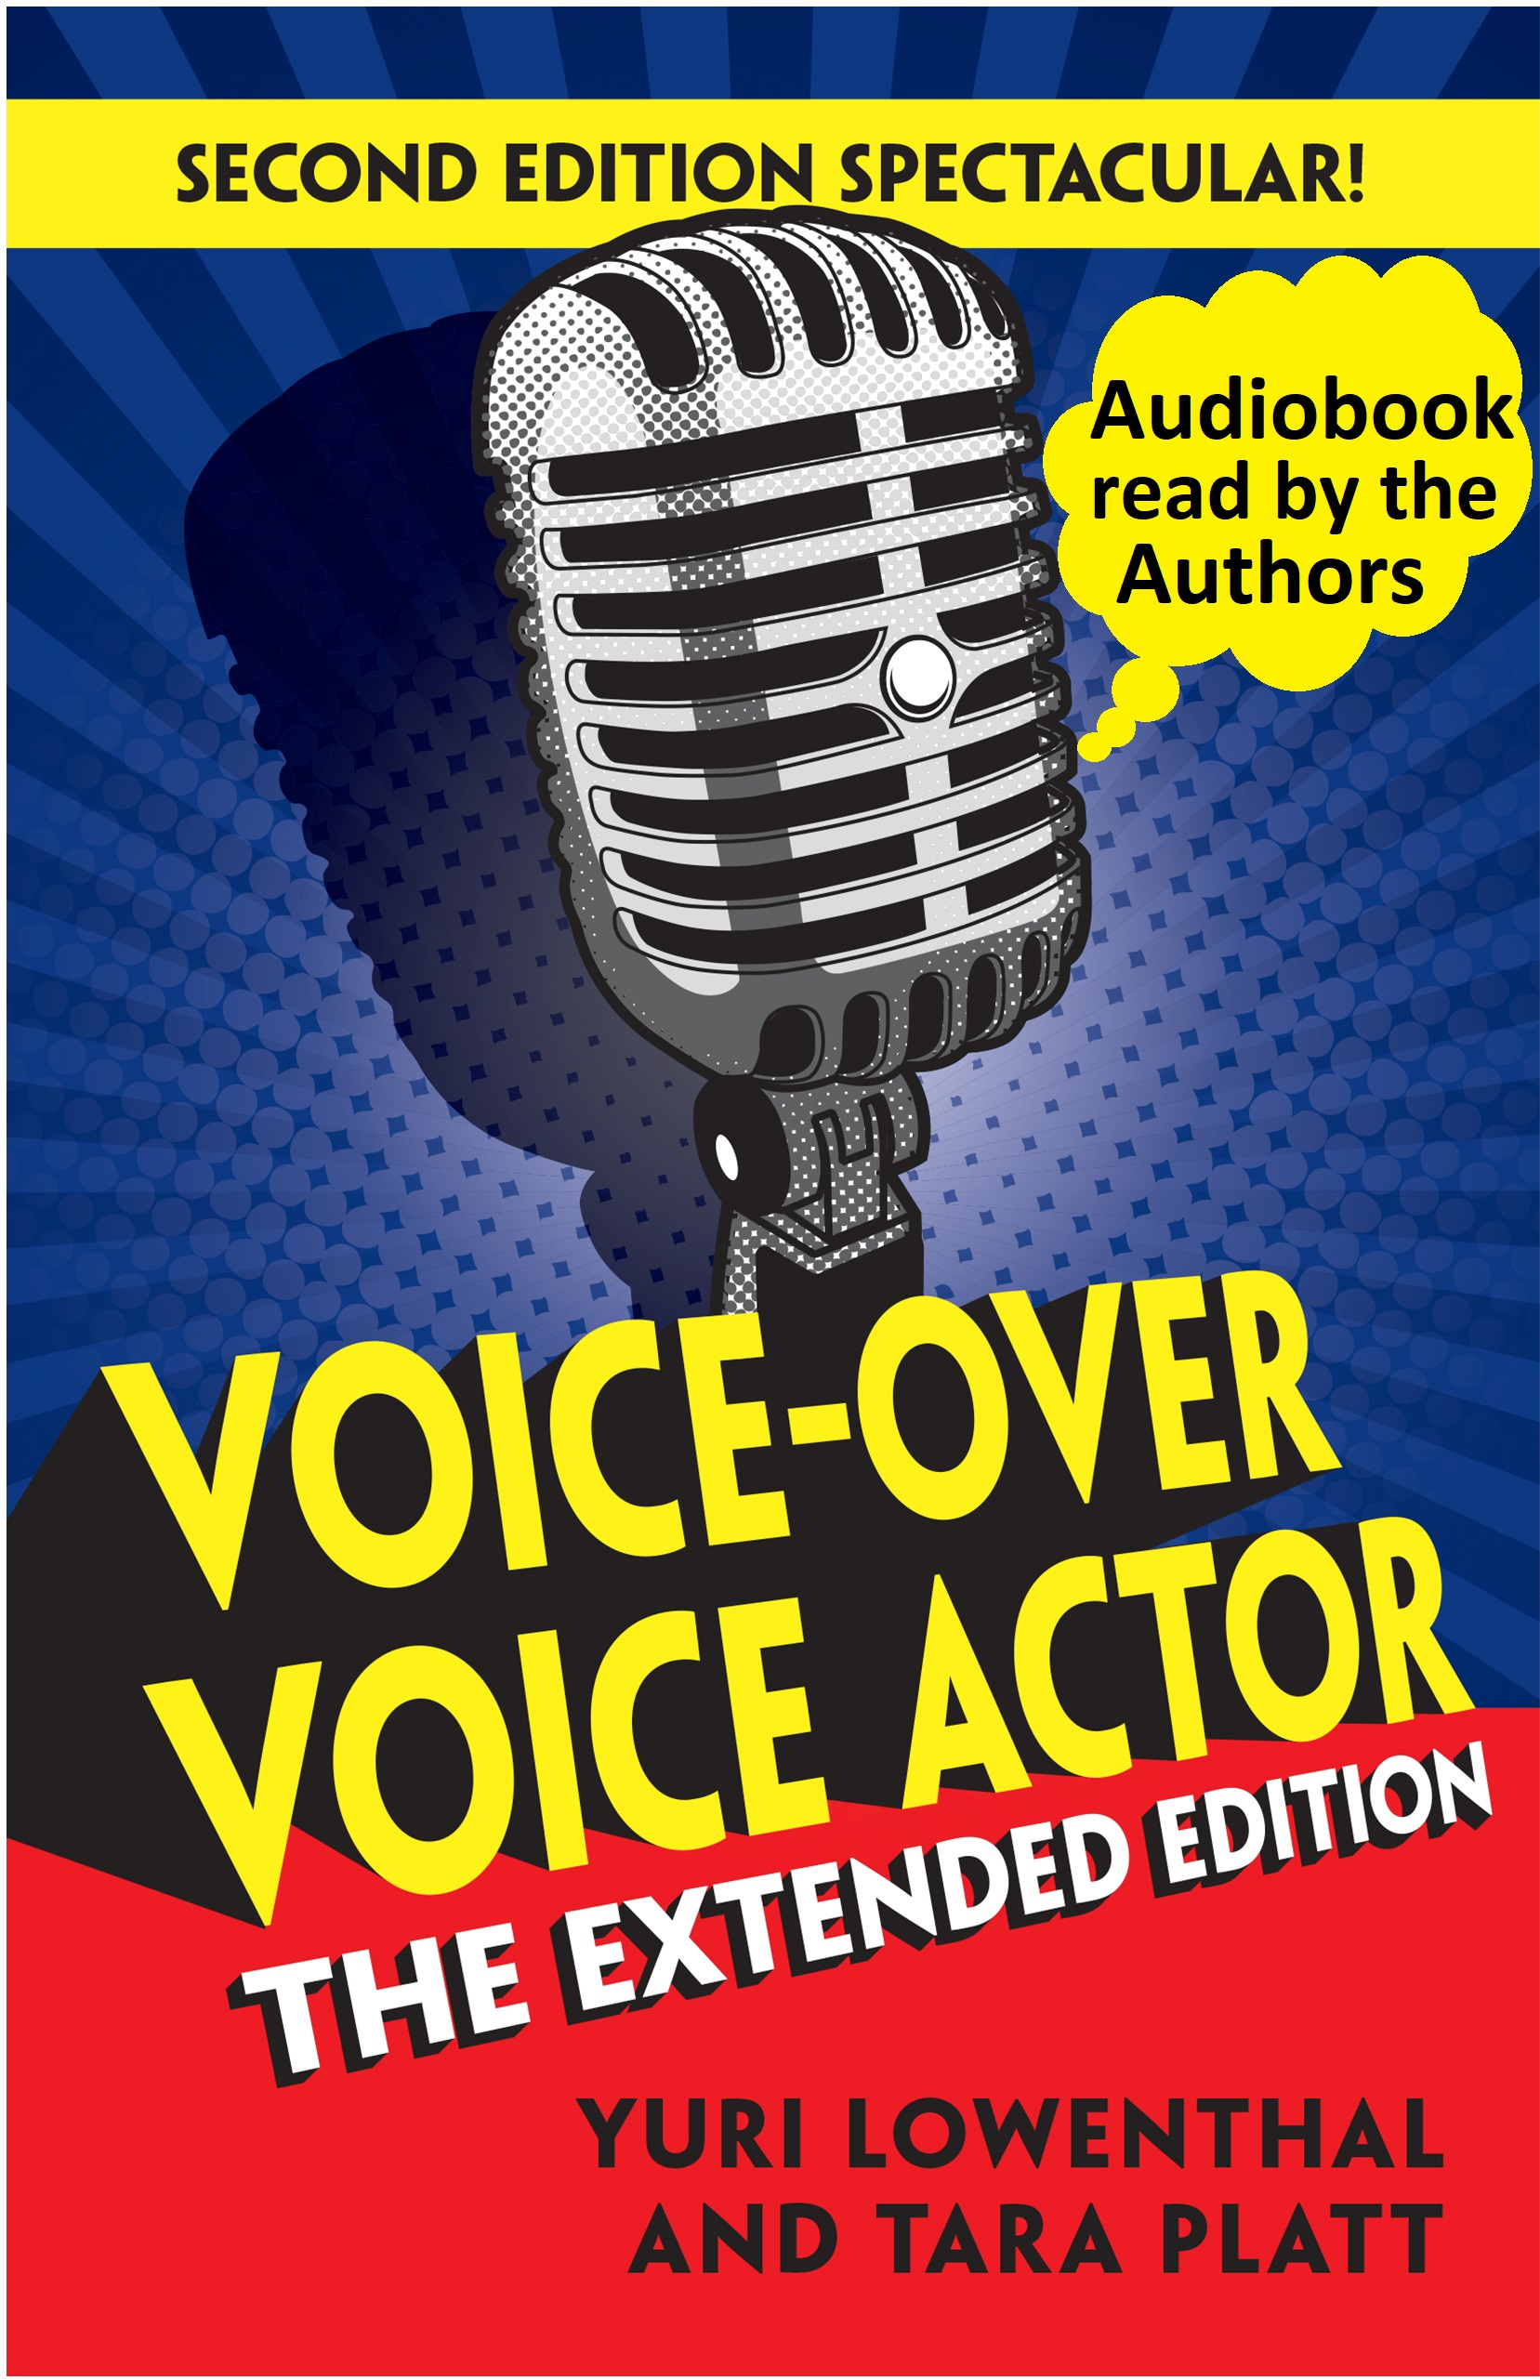 Audiobook - Read by authors, Lowenthal and Platt, the audiobook offers the listener a chance to get the fun and wisdom of the book with the additional feature of having the original warm-up mp3 included.